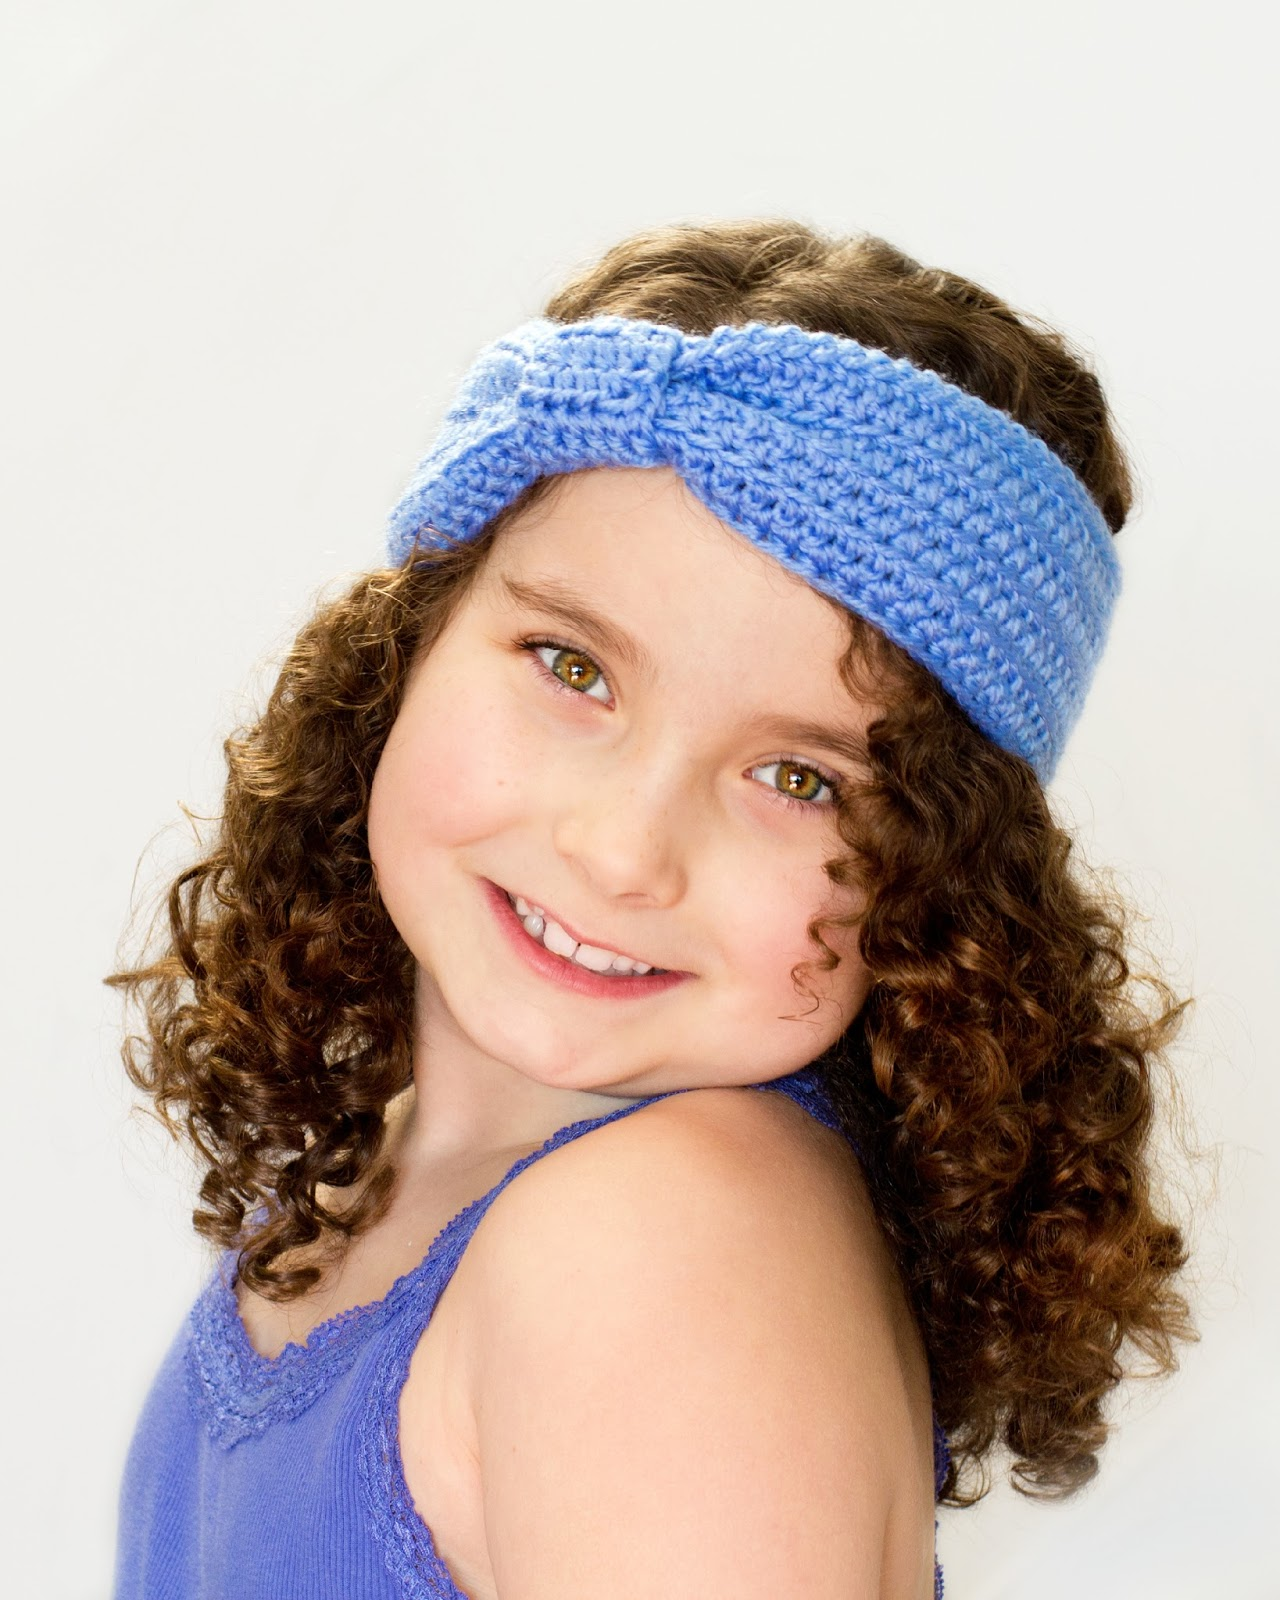 headband crochet pattern 12 months to adult sizes available. ~ turban knot headband ~ XCHWQDT